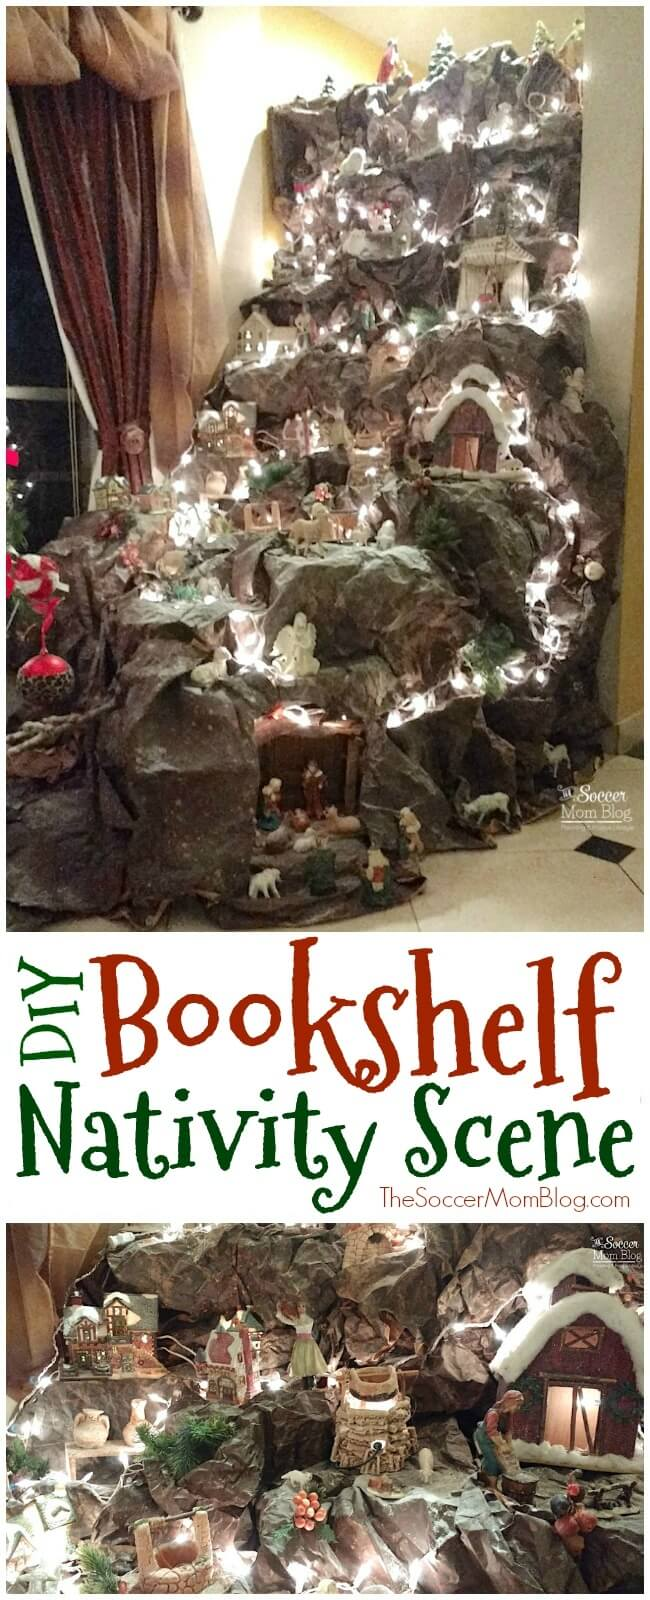 This DIY Nativity Scene is absolutely stunning - easy to recreate at home with simple up-cycled materials and a bookshelf!